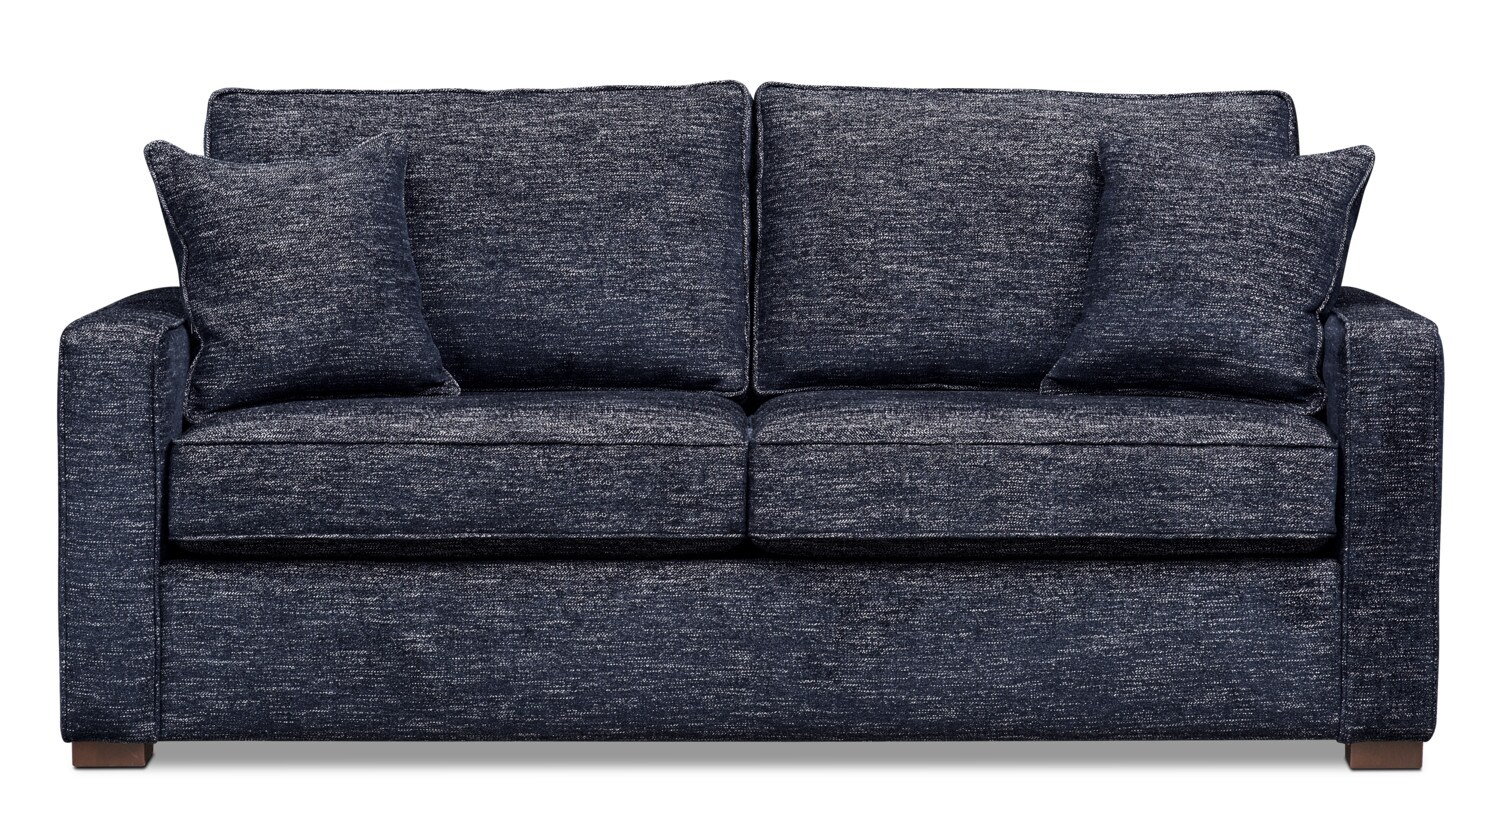 Mayson 78 Quot Full Memory Foam Sleeper Sofa Navy Value